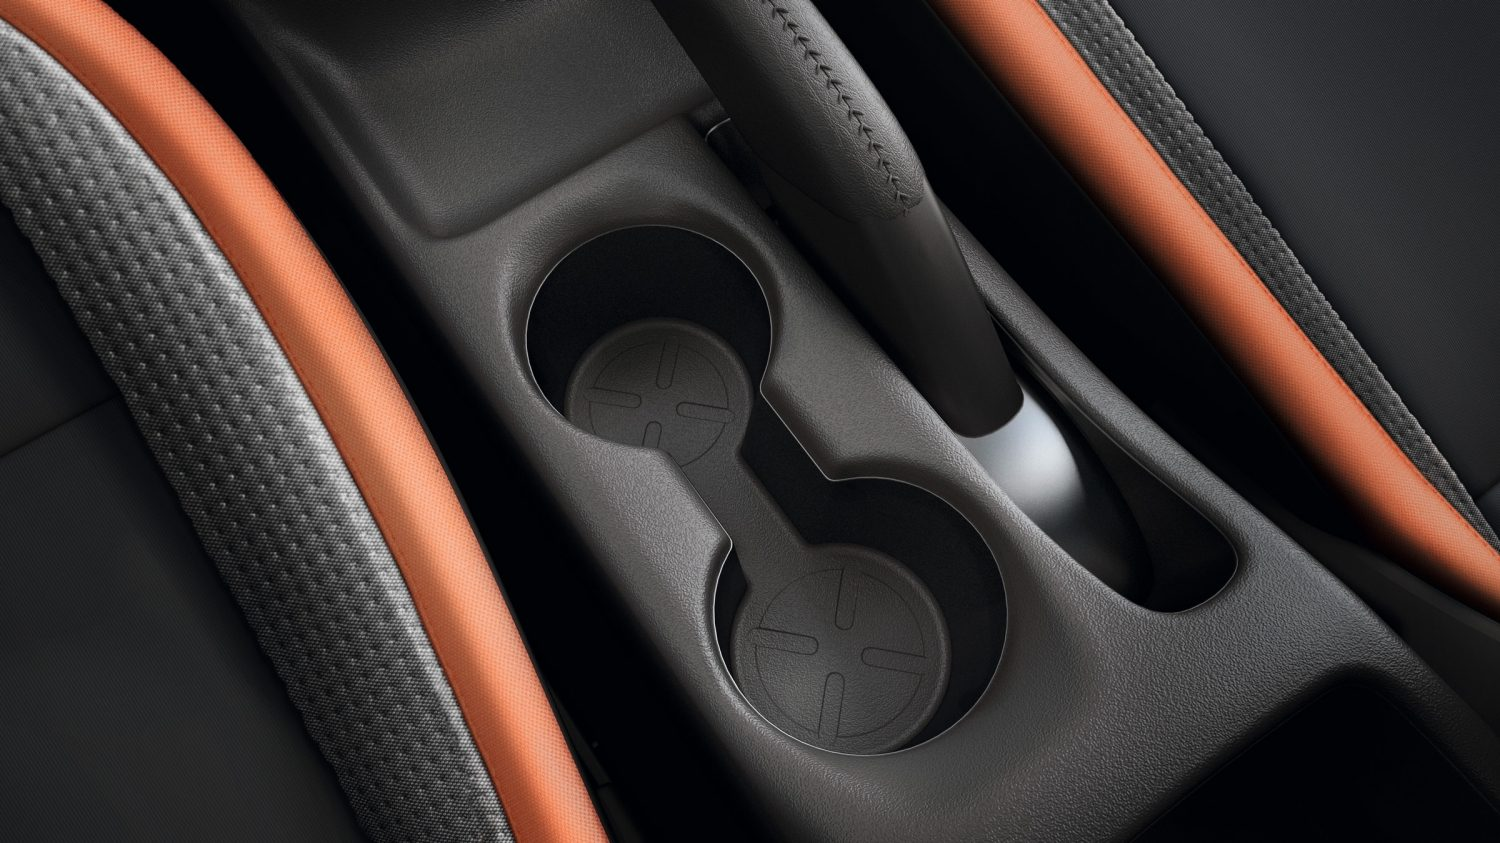 Nissan Micra Multiple Cupholder